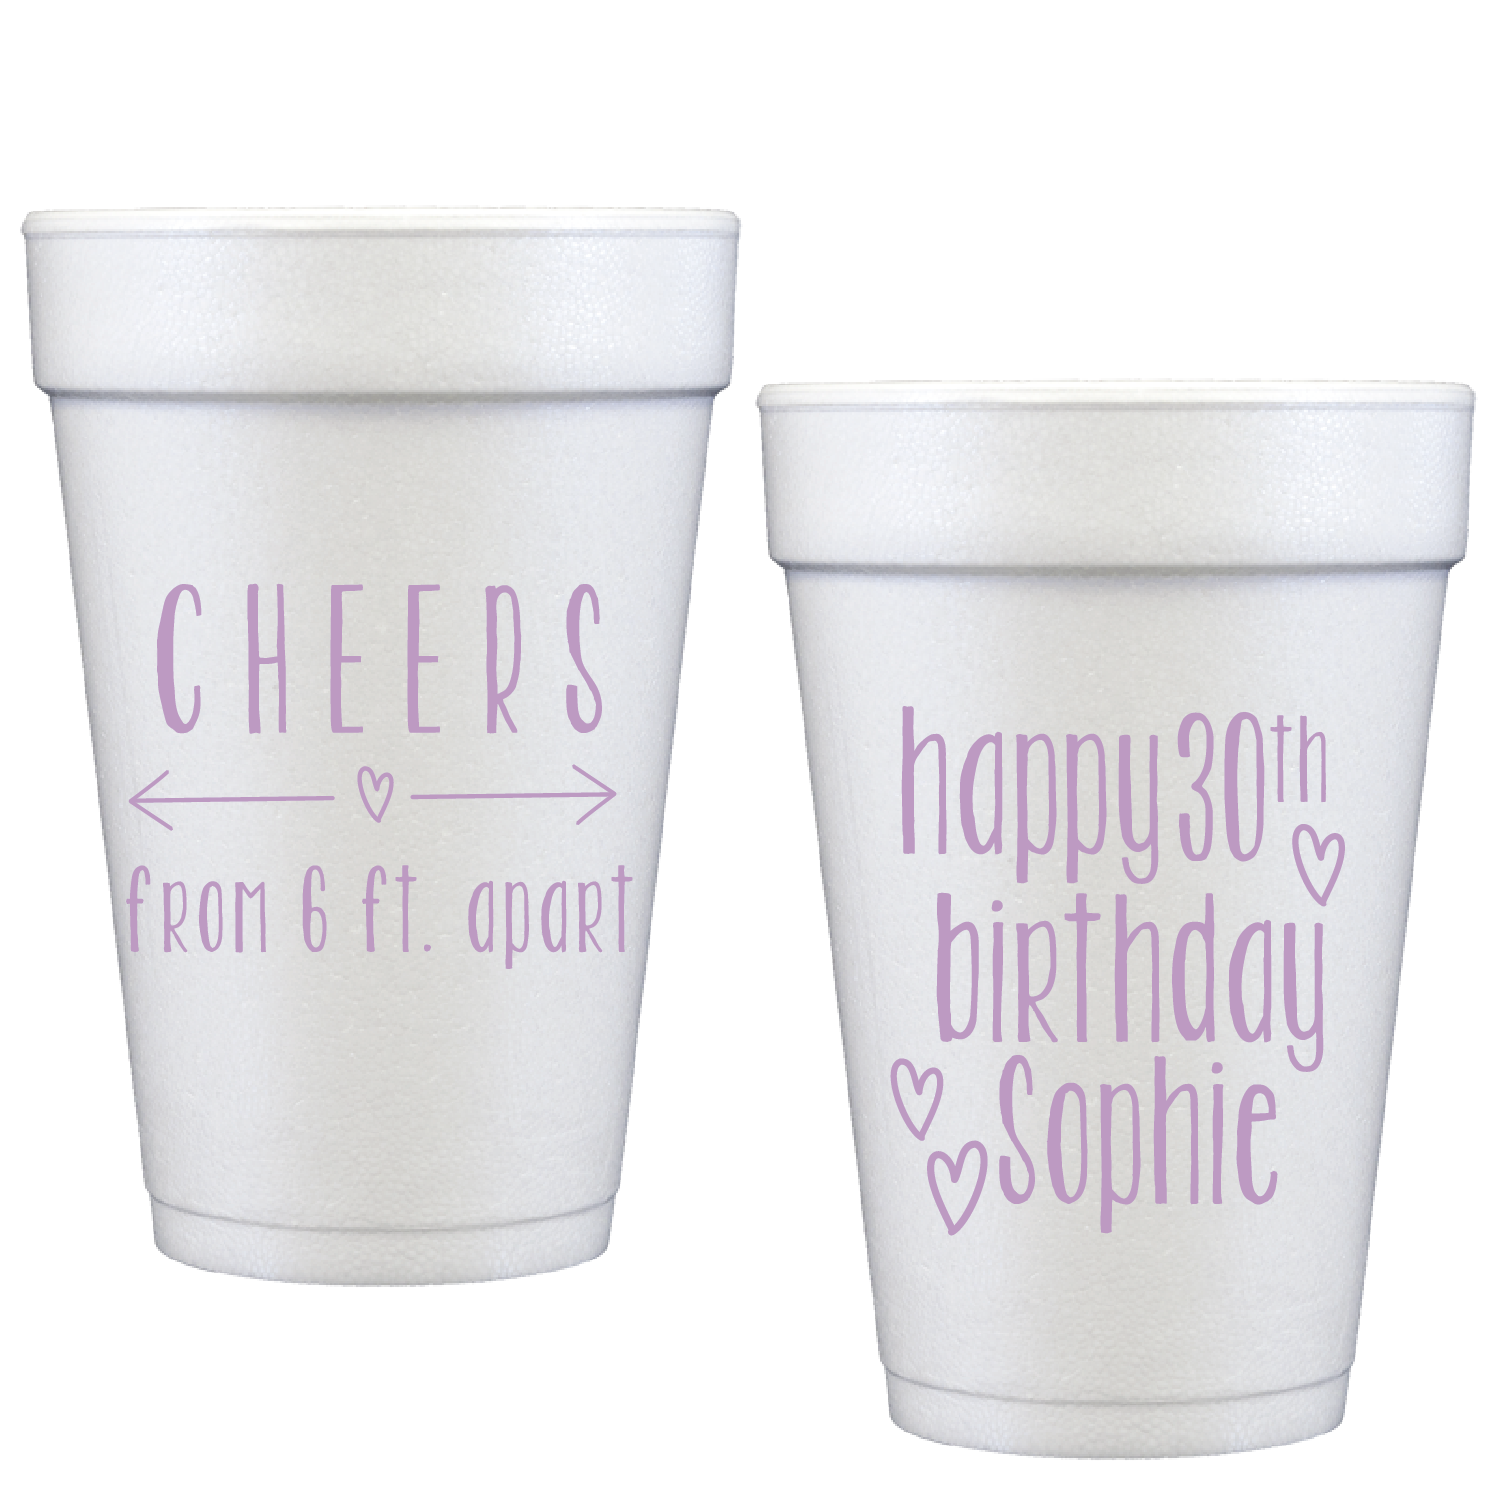 styrofoam cups | 6 ft. apart + personalization